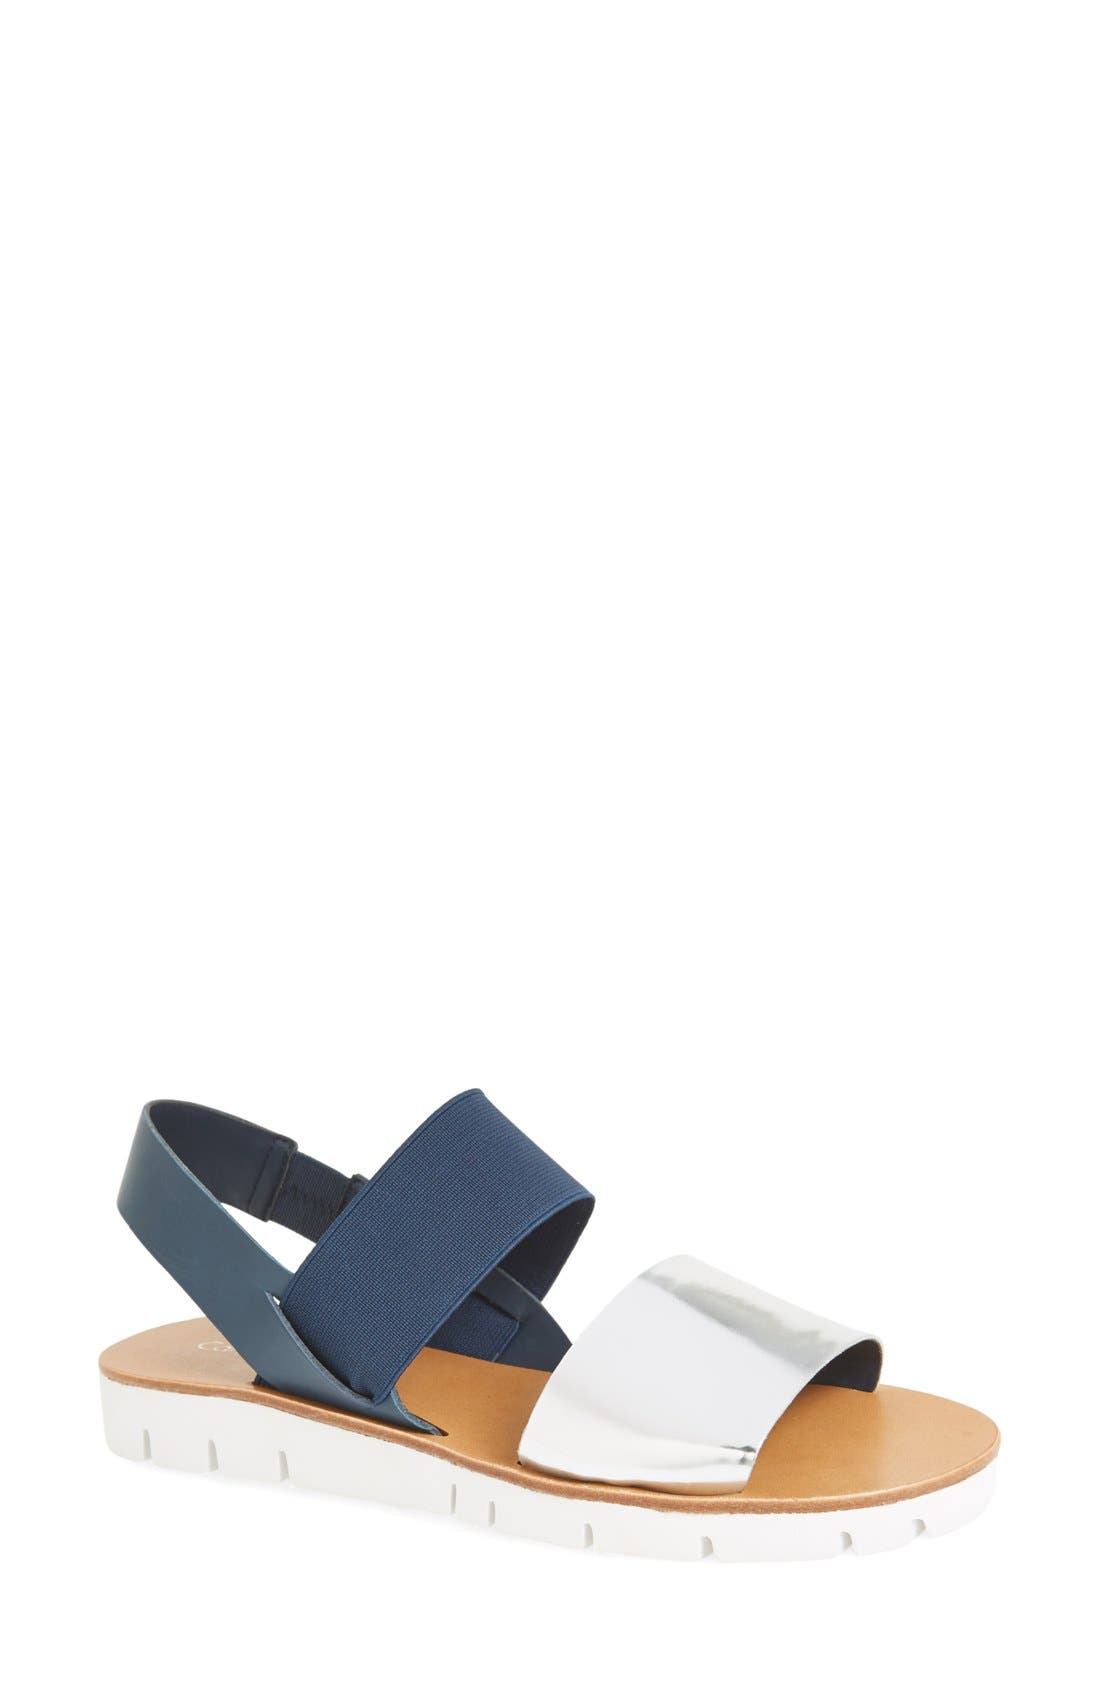 Alternate Image 1 Selected - Calvin Klein 'Prisma' Double Band Sport Sandal (Women)